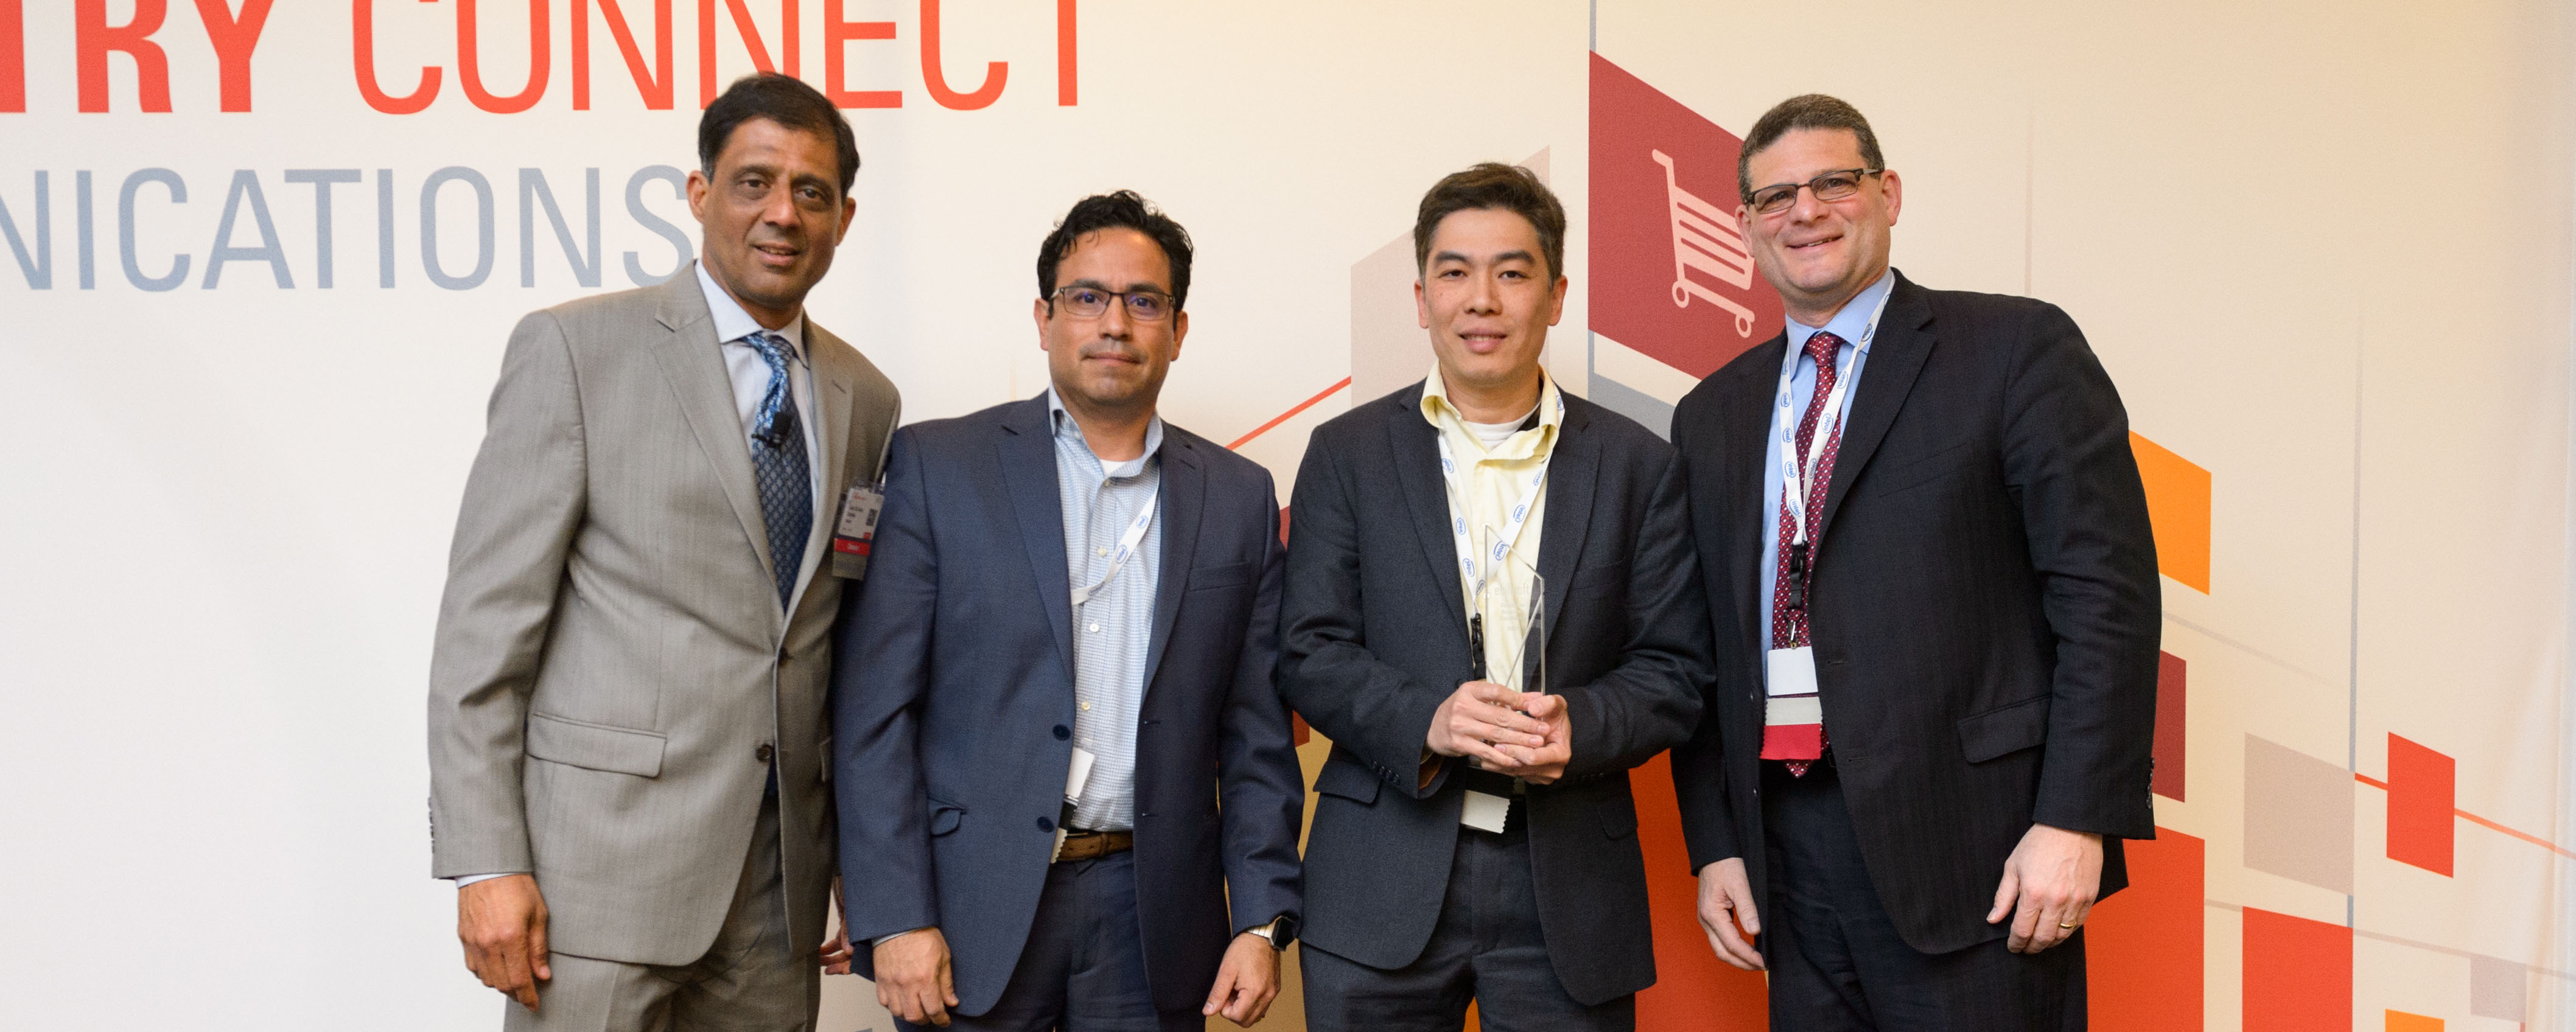 Ebillsoft awarded Oracle's Solutions Business Excellence Award at Oracle Industry Connect.